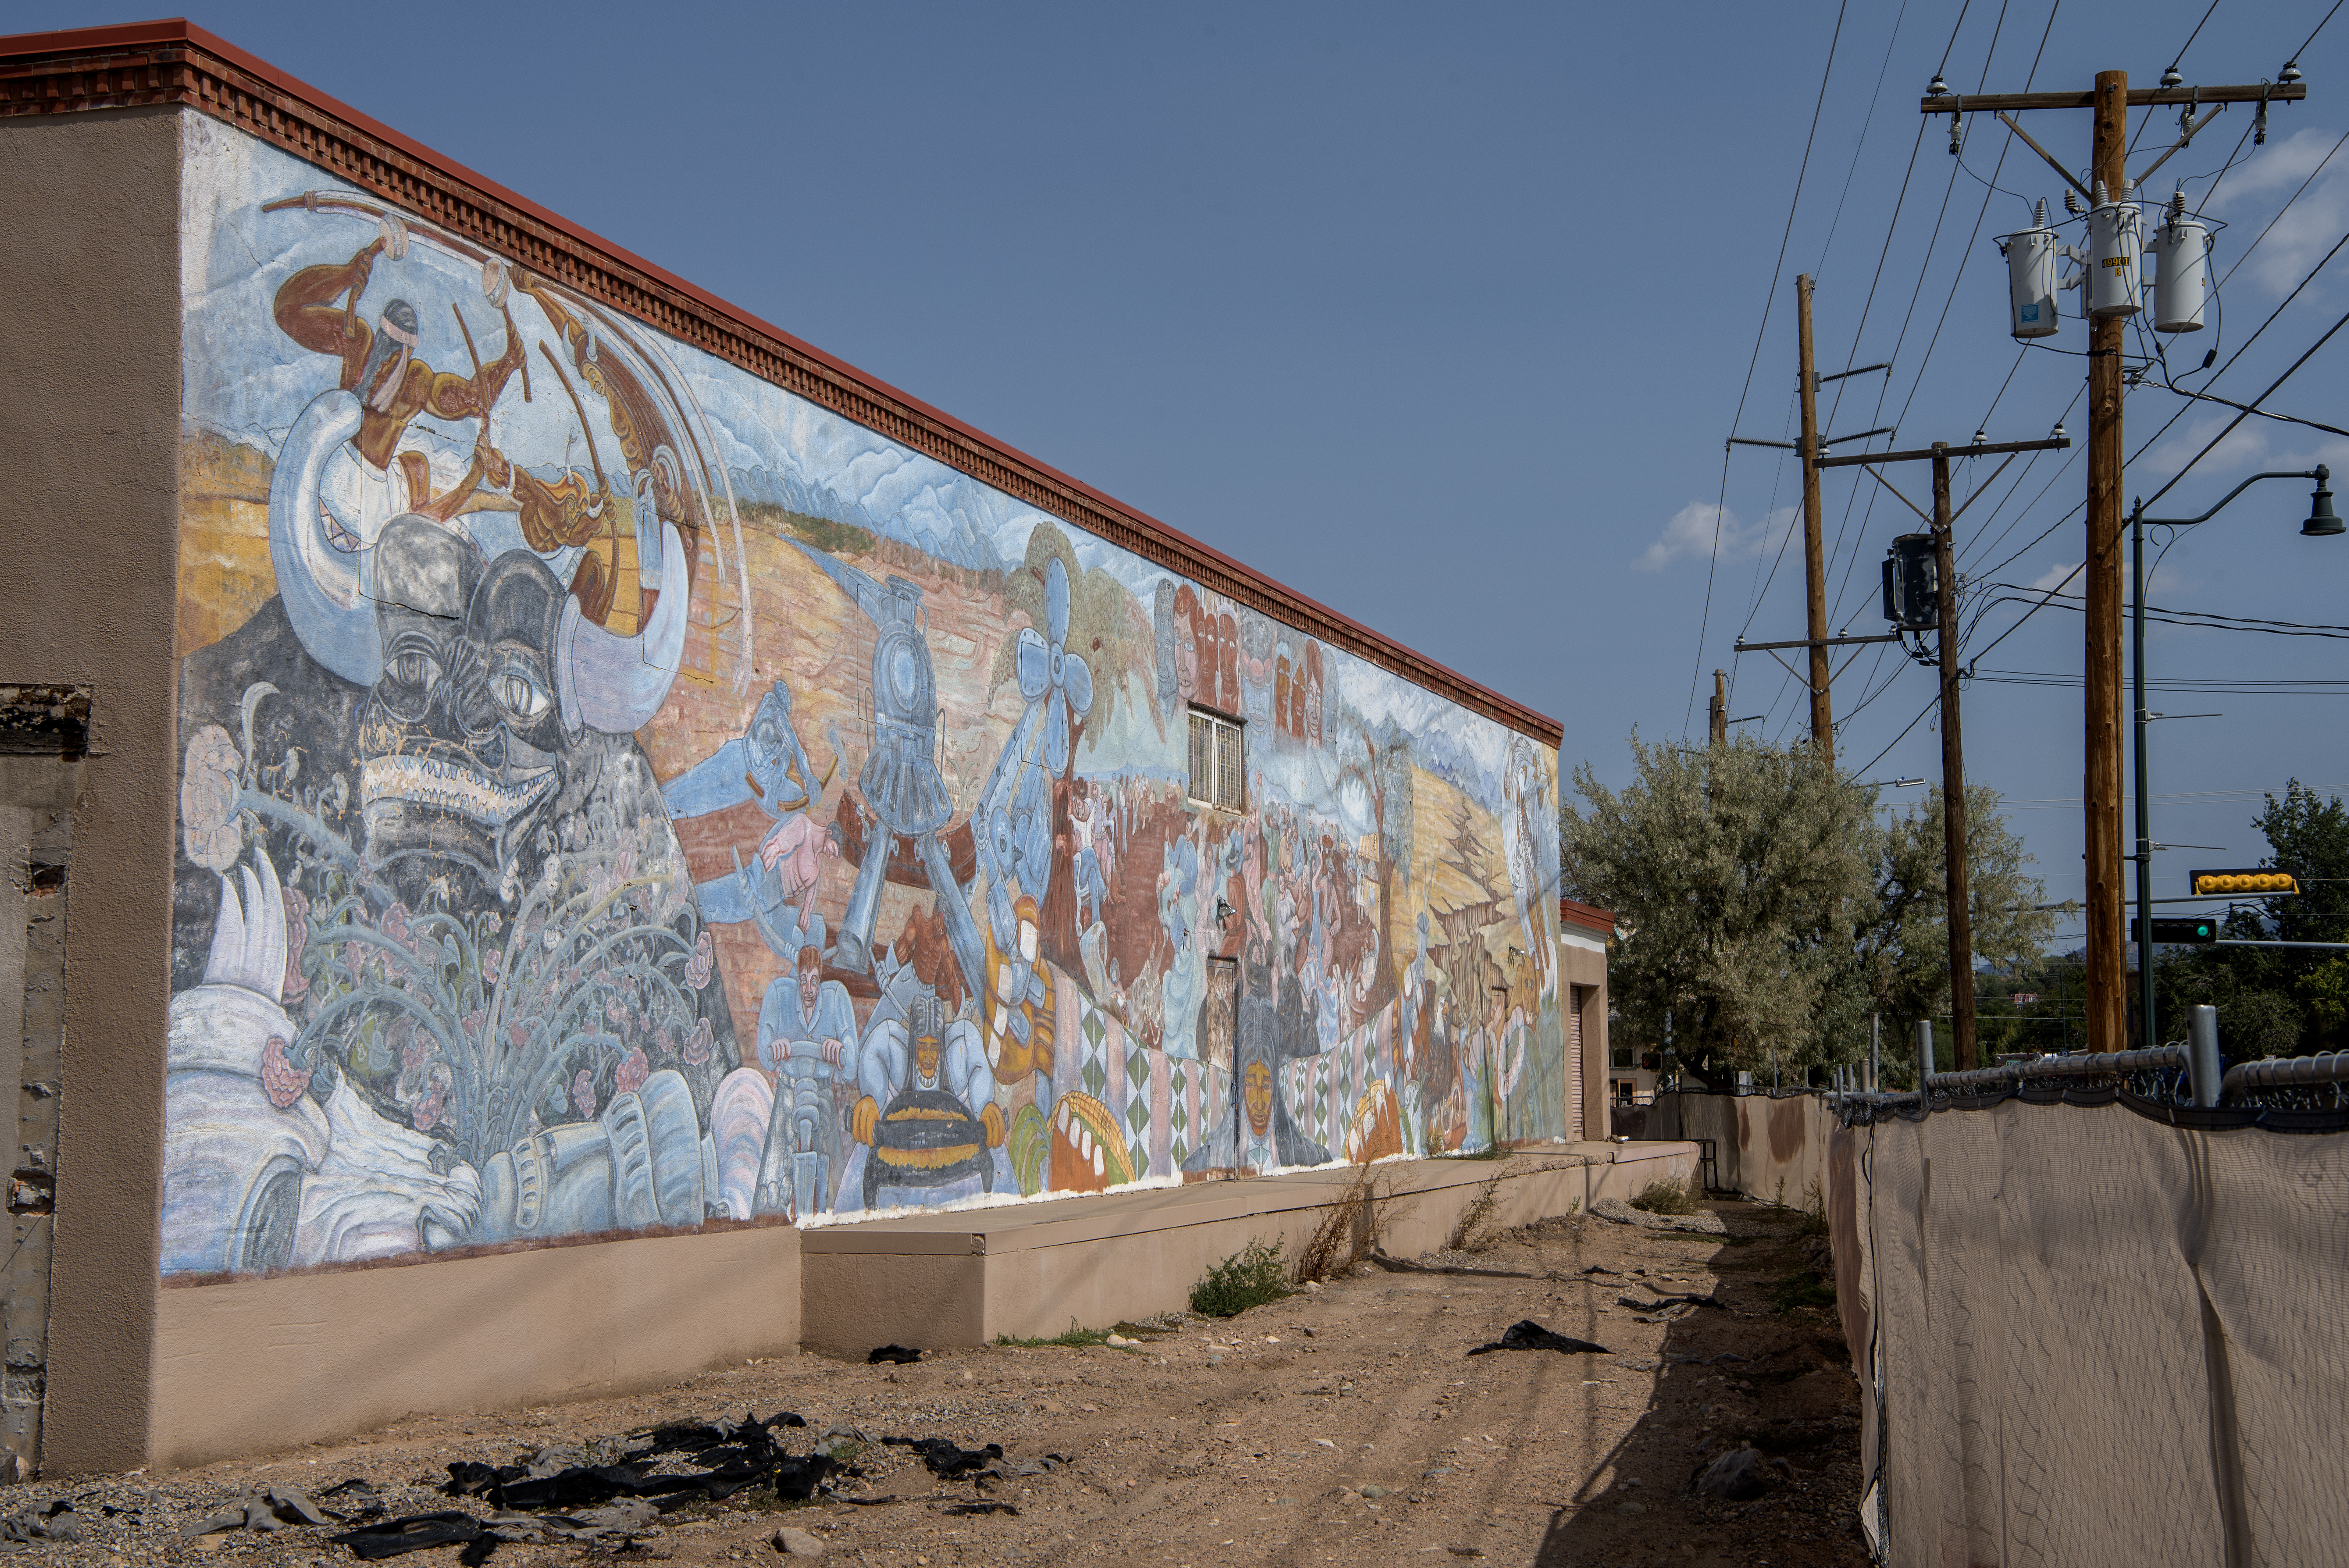 'Multicultural' mural not dead yet